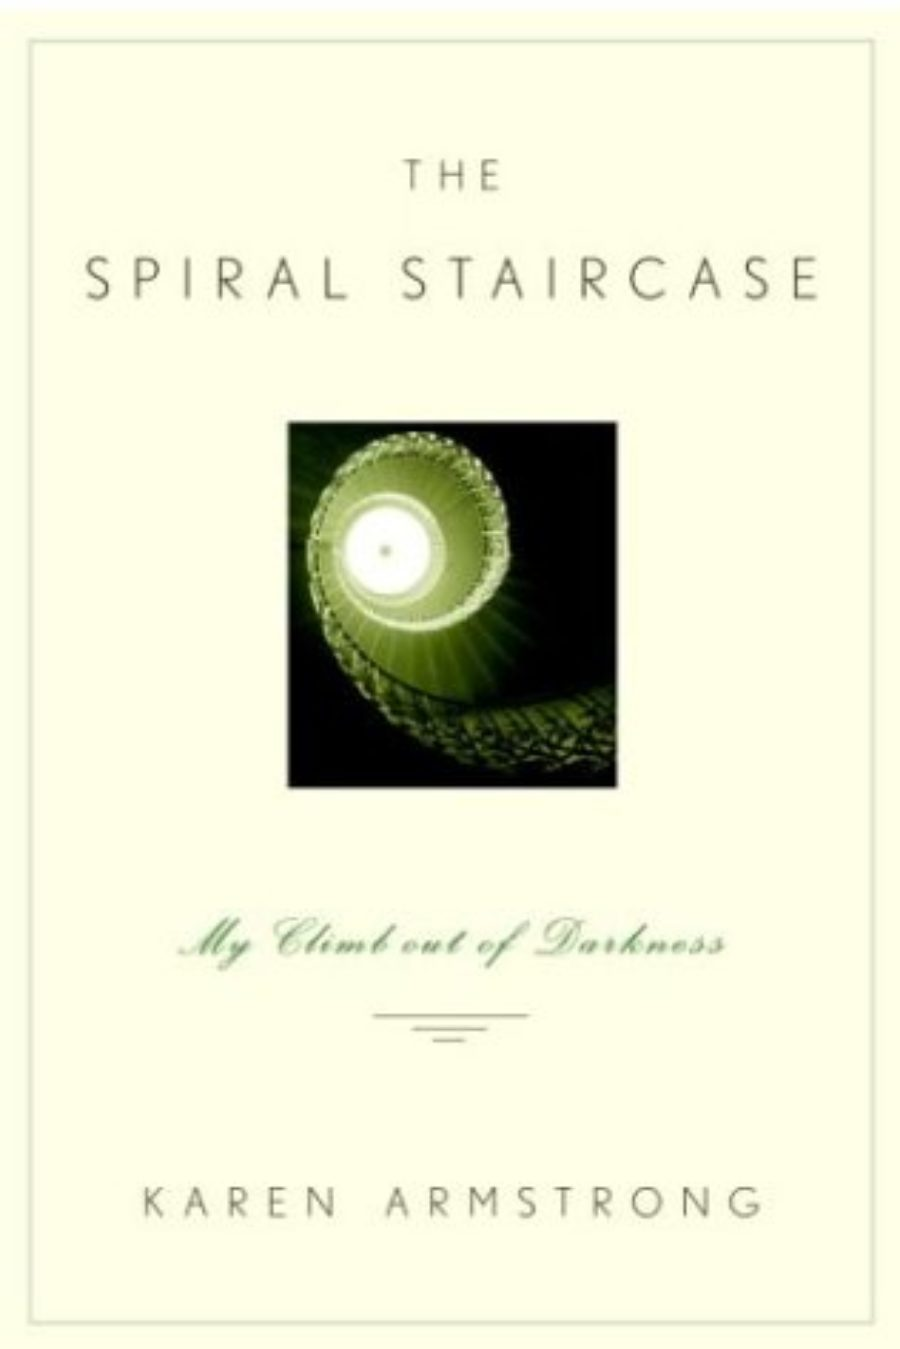 Cover of The Spiral Staircase: My Climb Out of Darkness